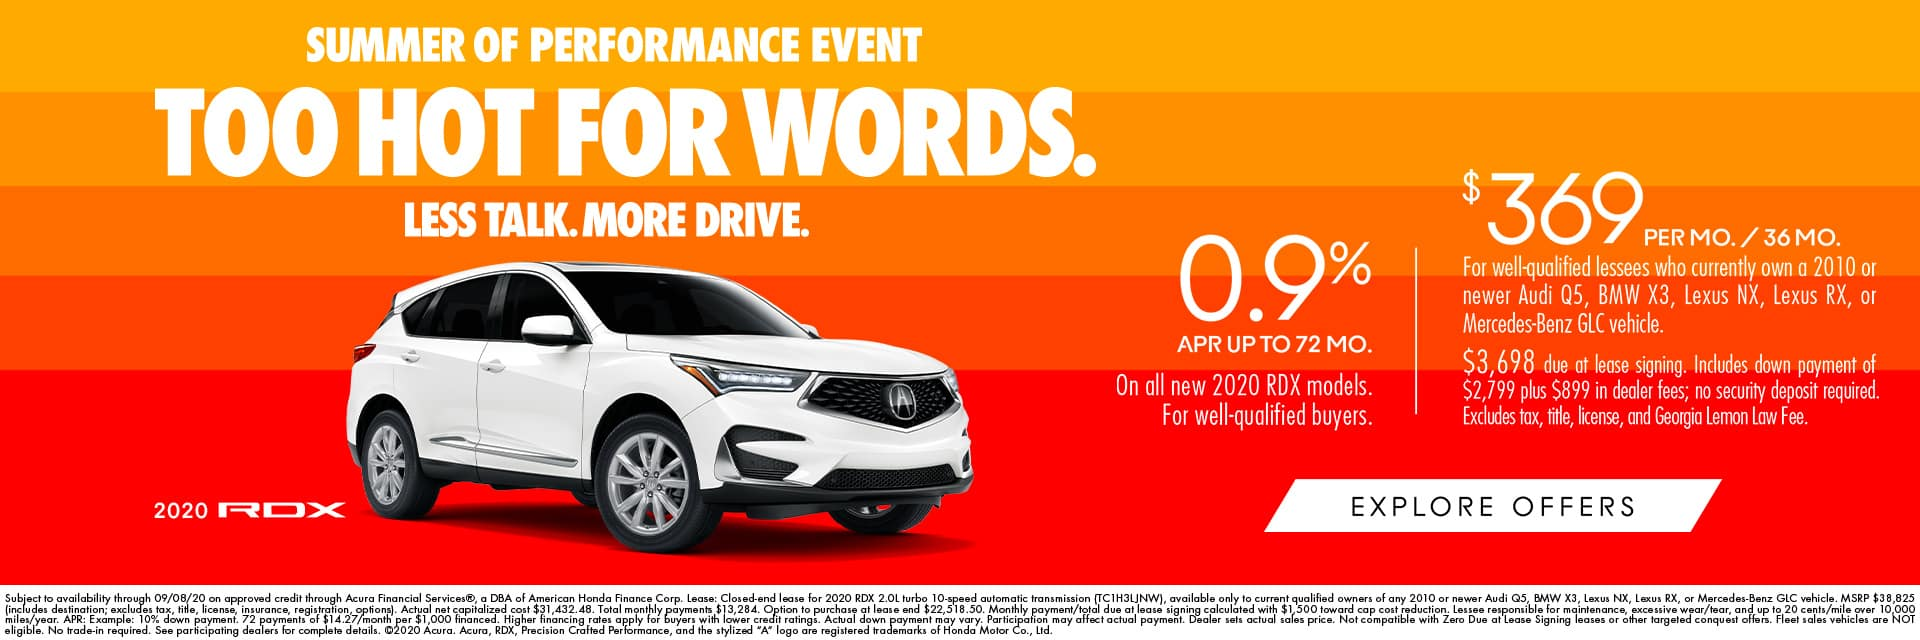 RDX Targeted Conquest Lease $369 + 0.9% APR (GA)